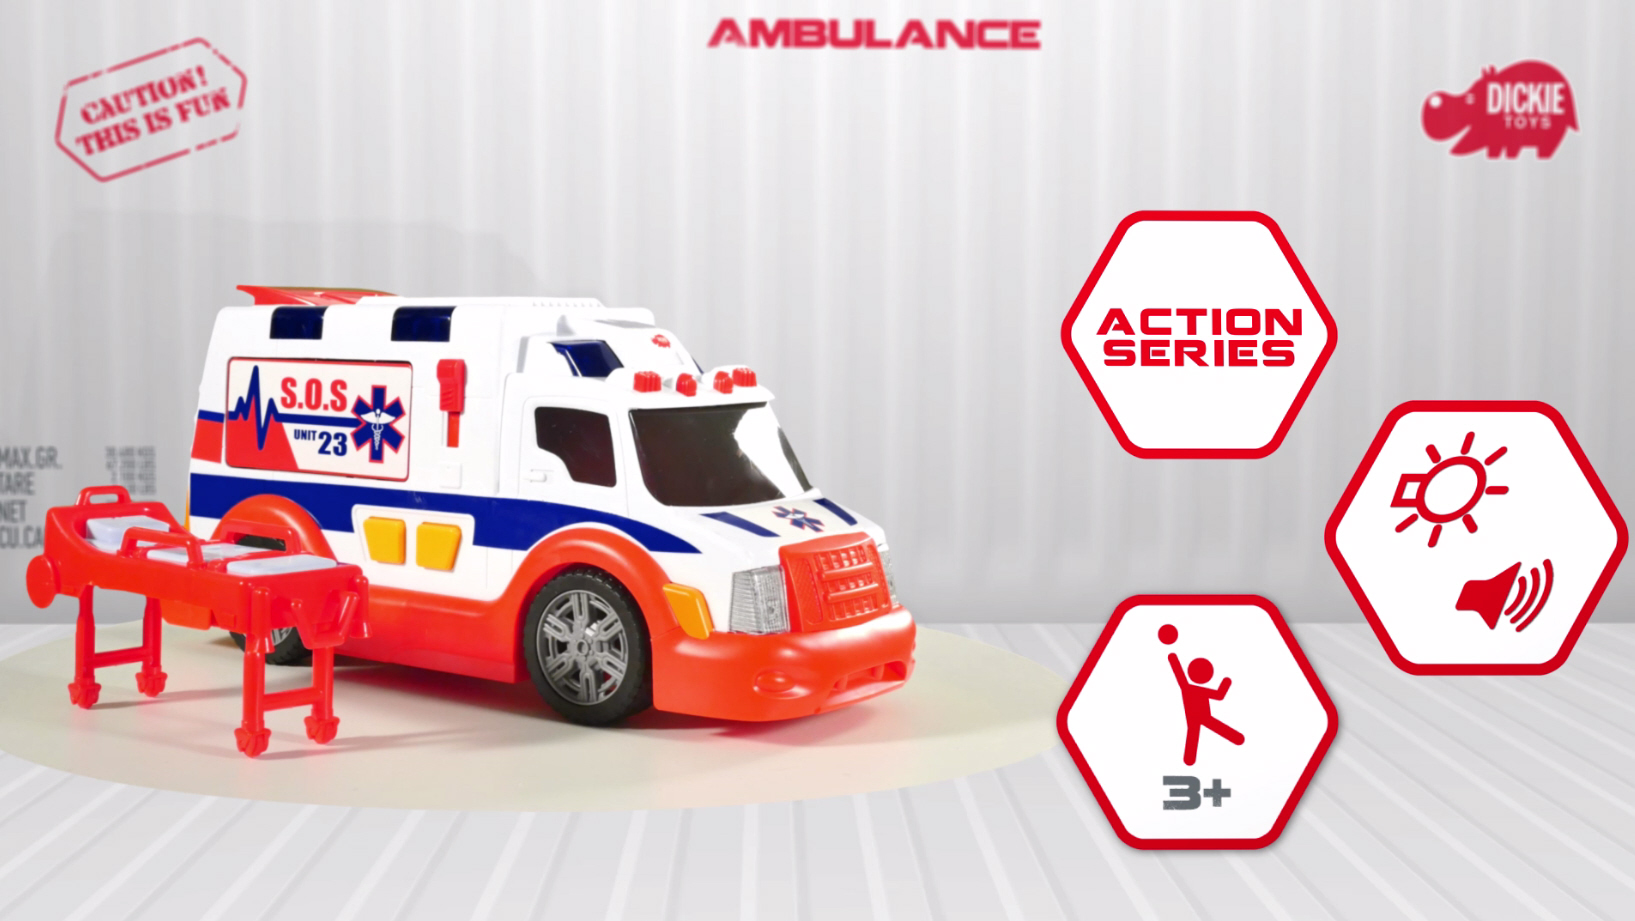 Action Series Ambulance - Krankenwagen - Ambulanz - Dickie Toys